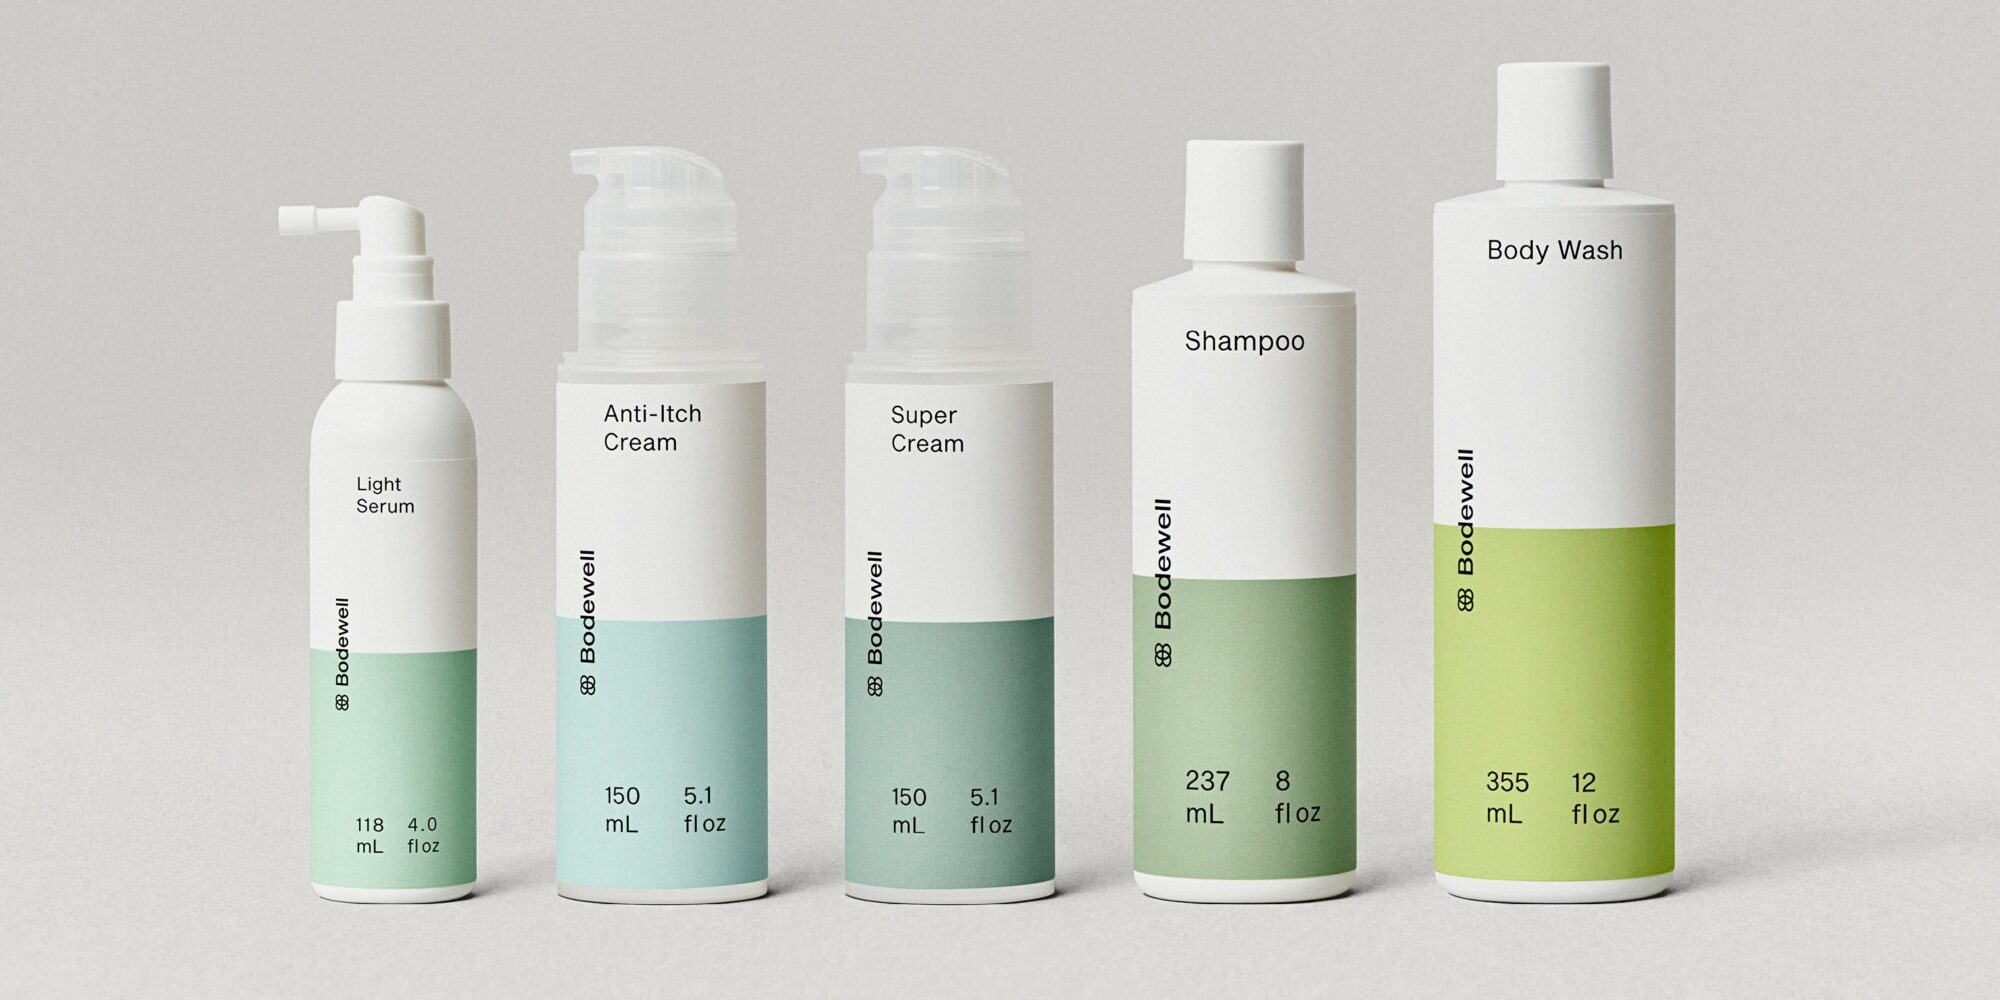 P&G Ventures-Backed Bodewell Wants To Put An End To Eczema Sufferers Cycling Through Disappointing Products